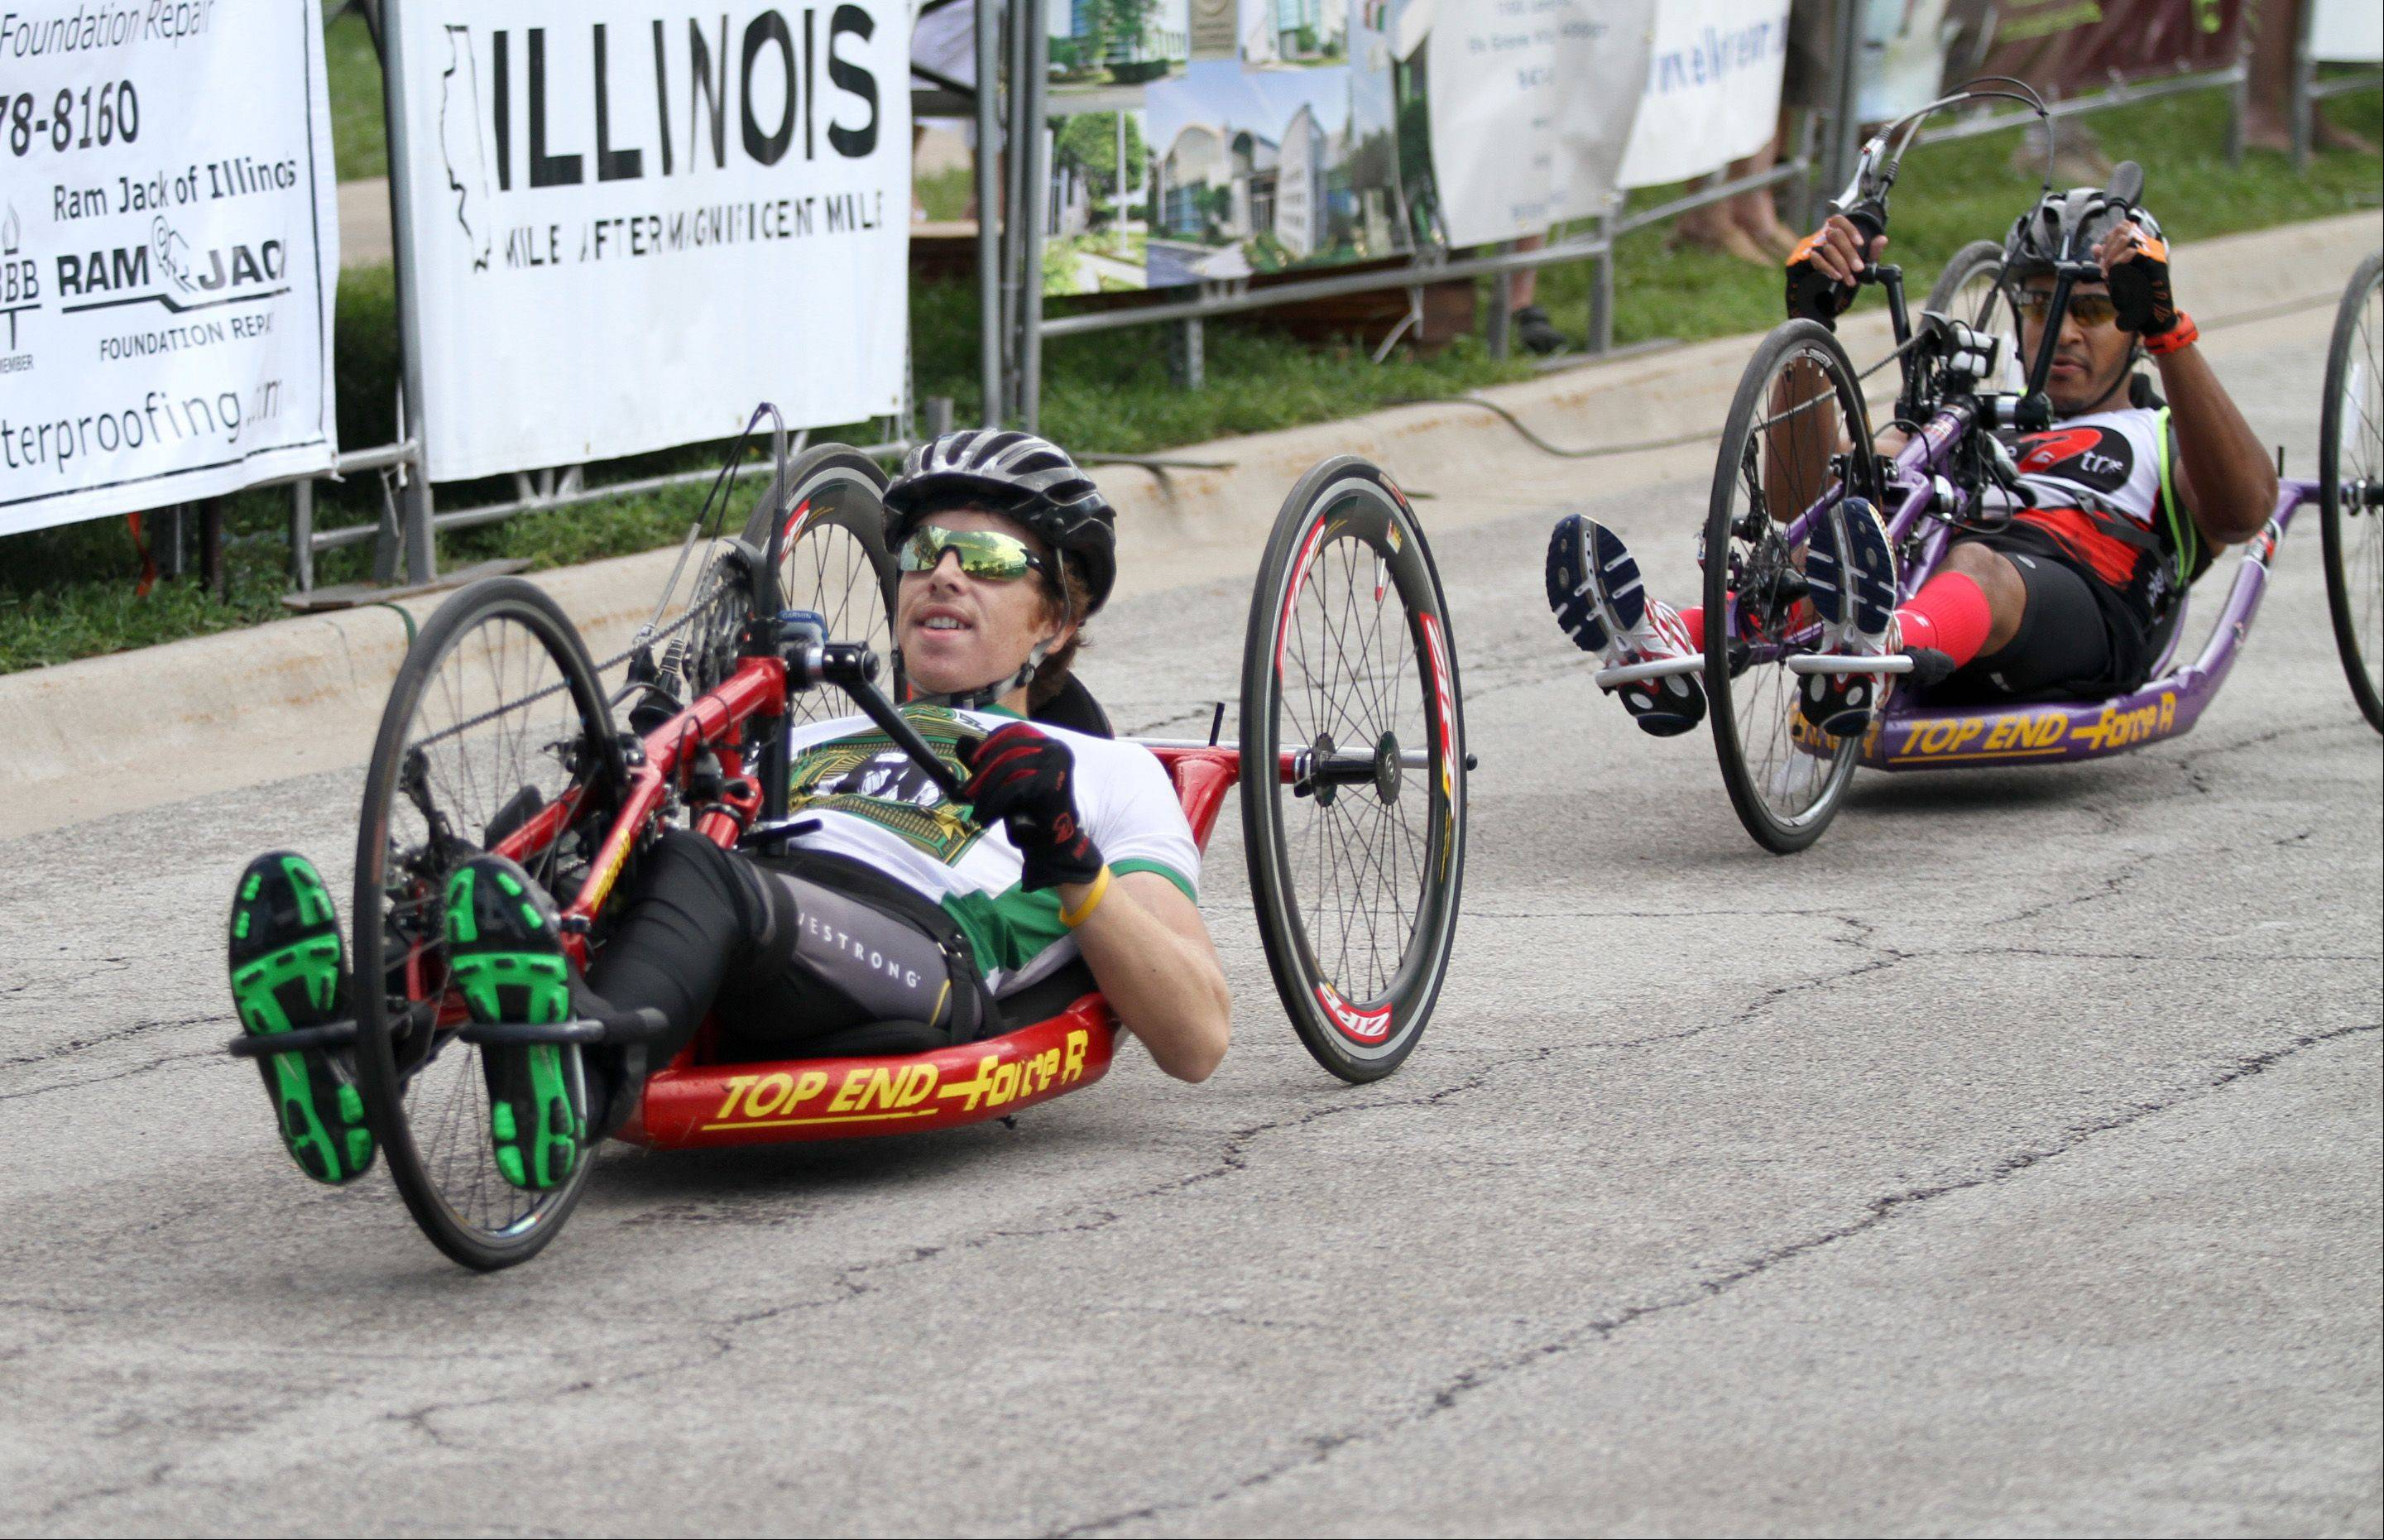 Mike Welch, front, and Iraq War veteran Sgt. Dan Casera, complete a lap on Sunday.